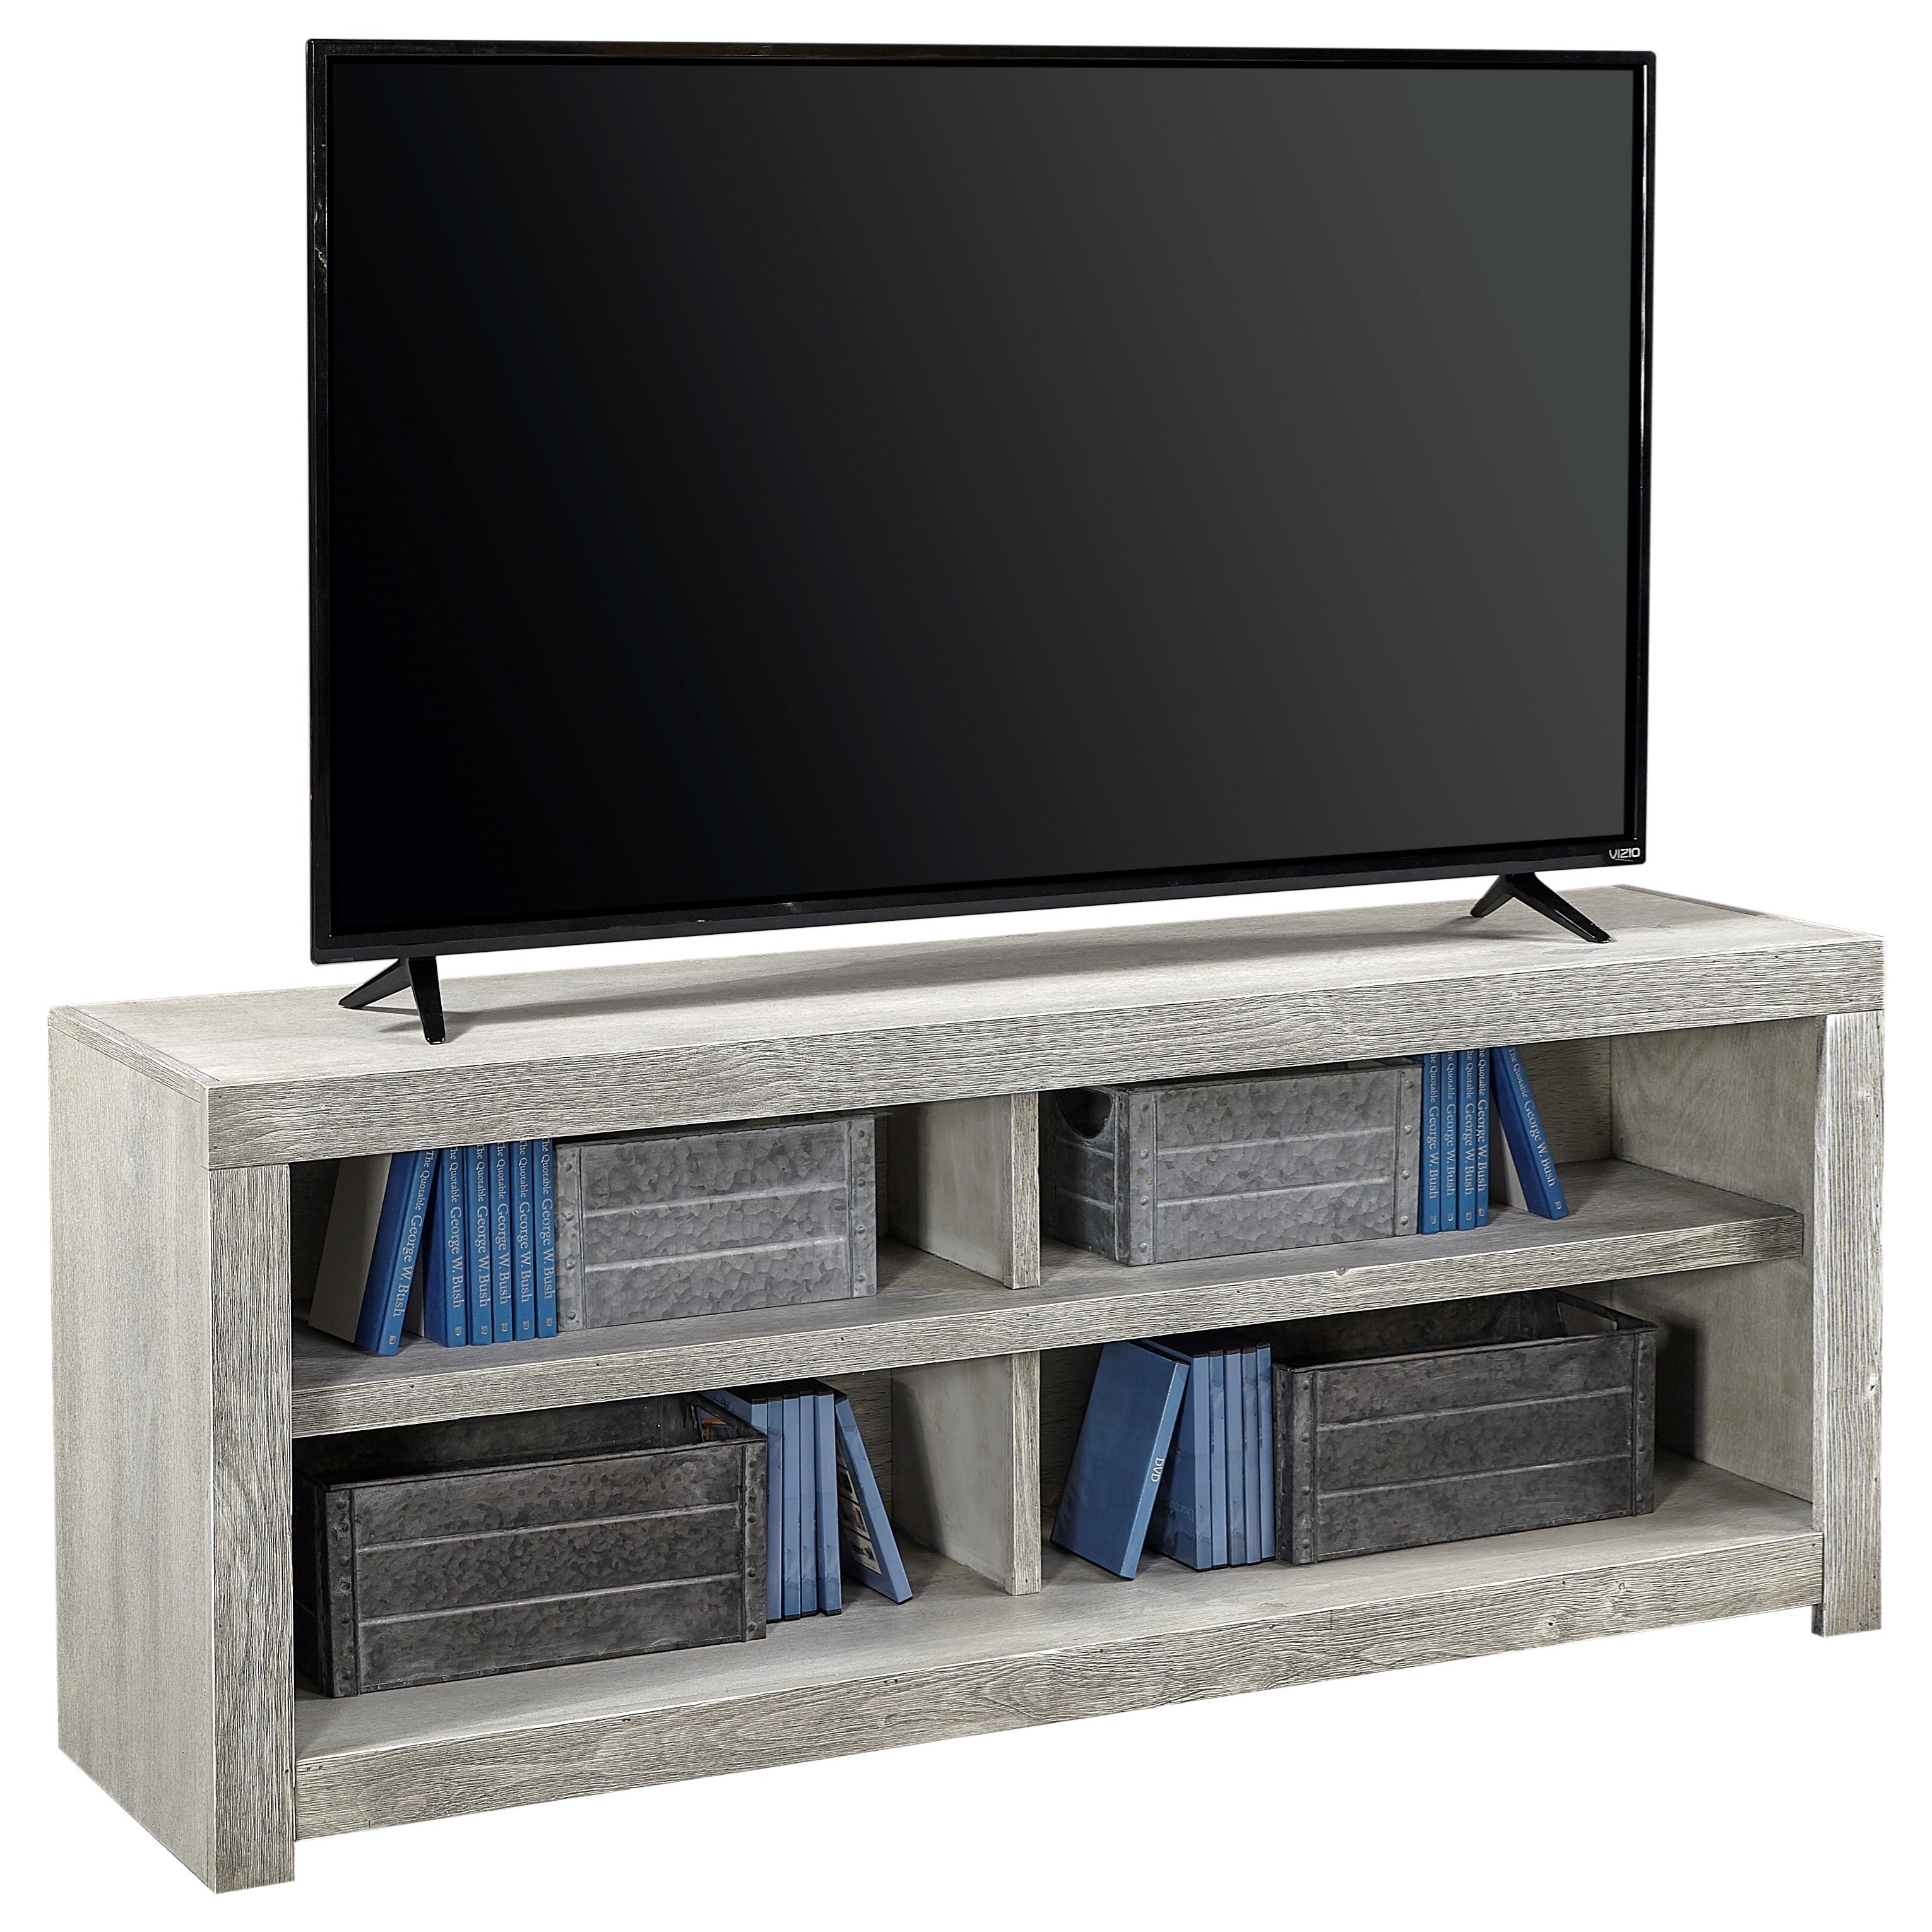 "Avery Loft 60"" Open Console by Aspenhome at Fisher Home Furnishings"